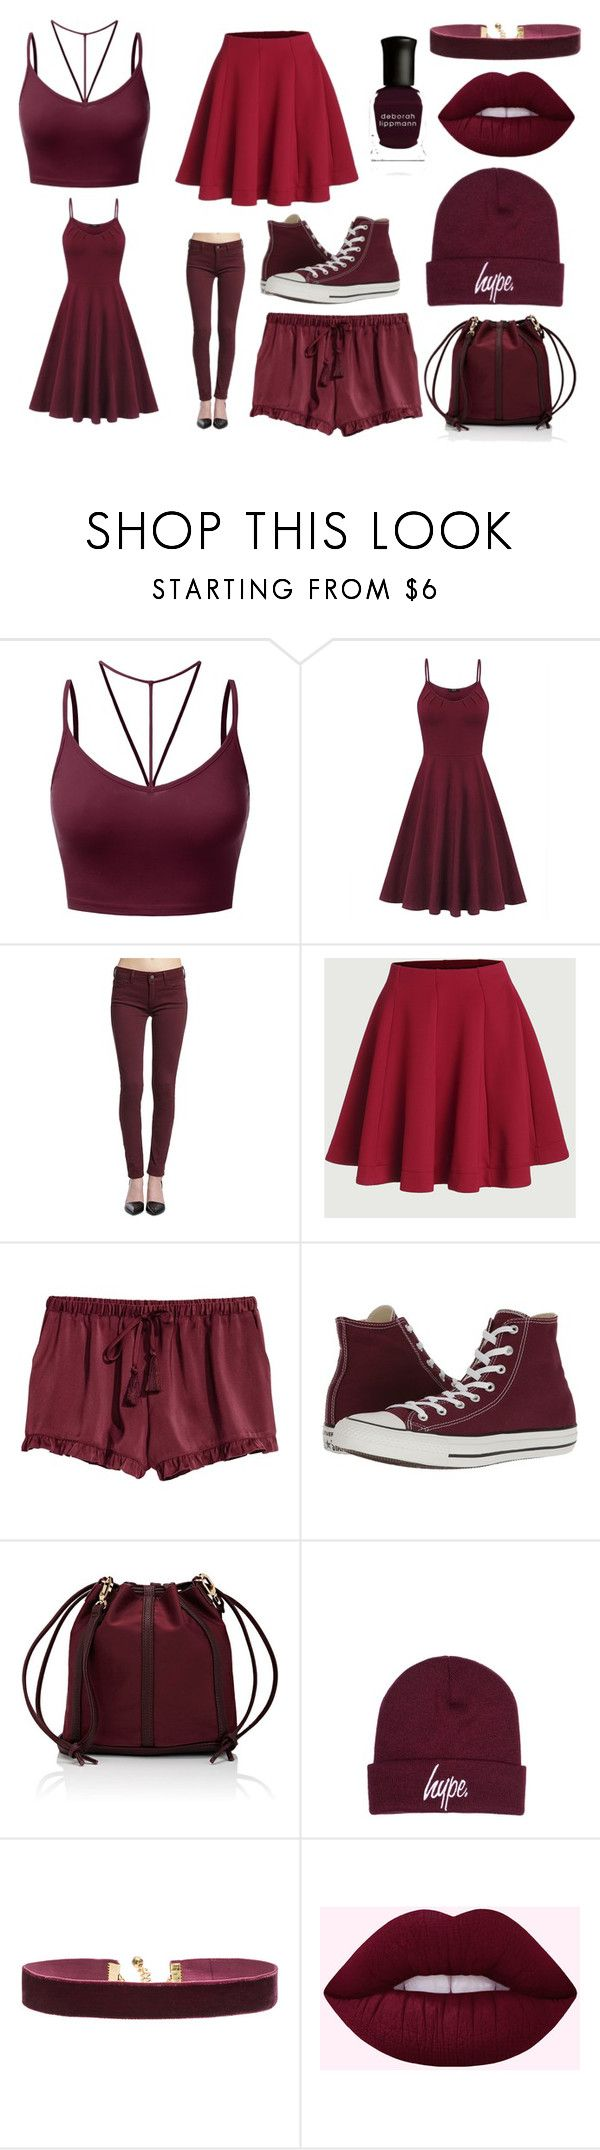 """dark red set"" by ruthmccarthy on Polyvore featuring J.TOMSON, Mavi, Converse, Deux Lux, Hype, Vanessa Mooney and Deborah Lippmann"